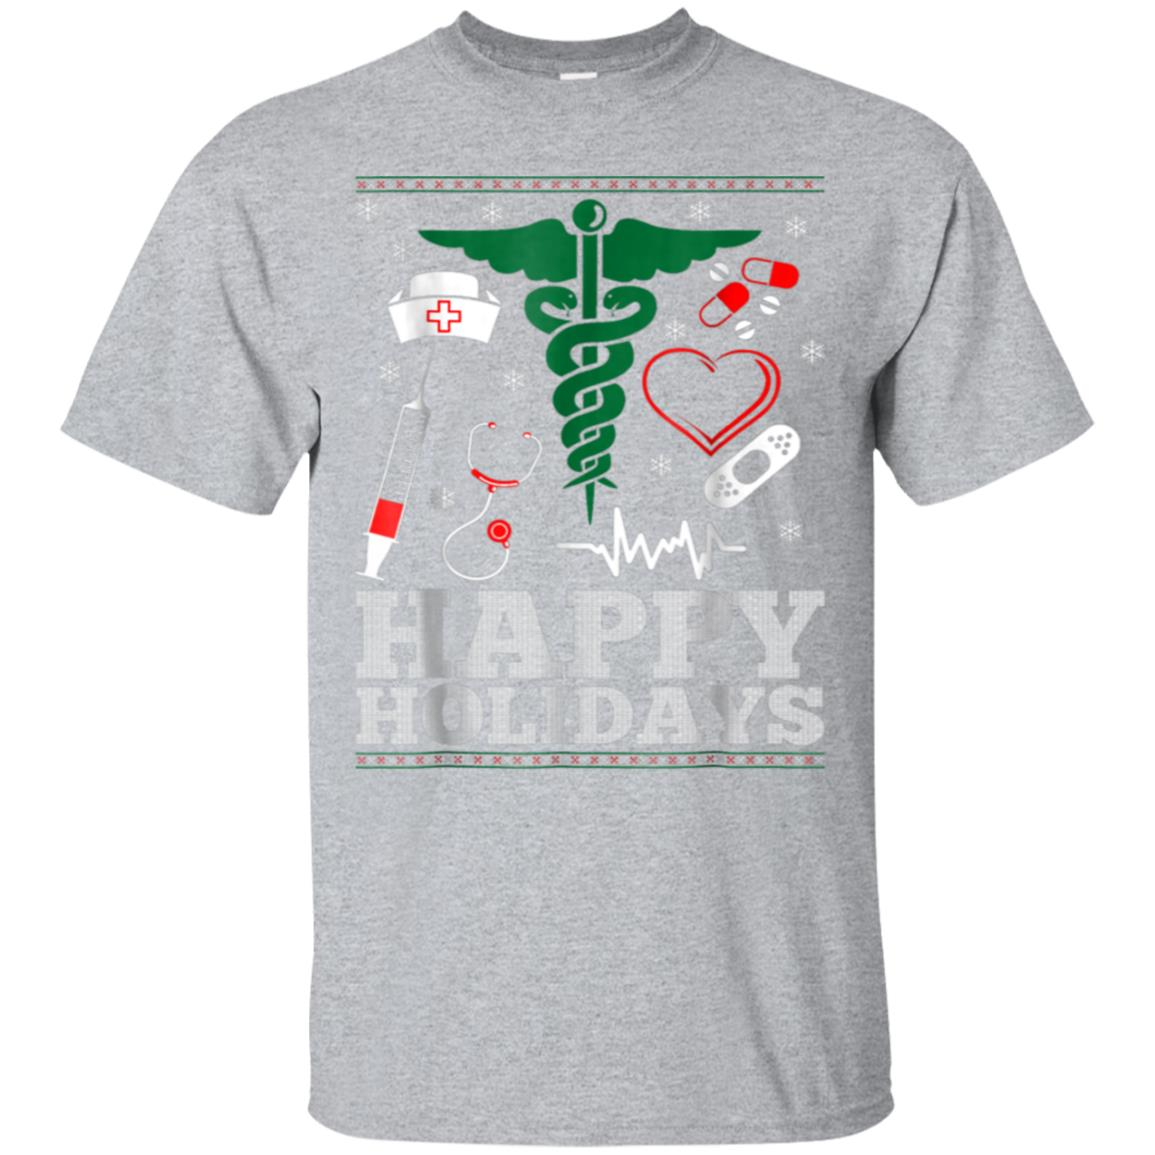 Happy Holidays Nurse Ugly Christmas Sweater Tshirt 99promocode